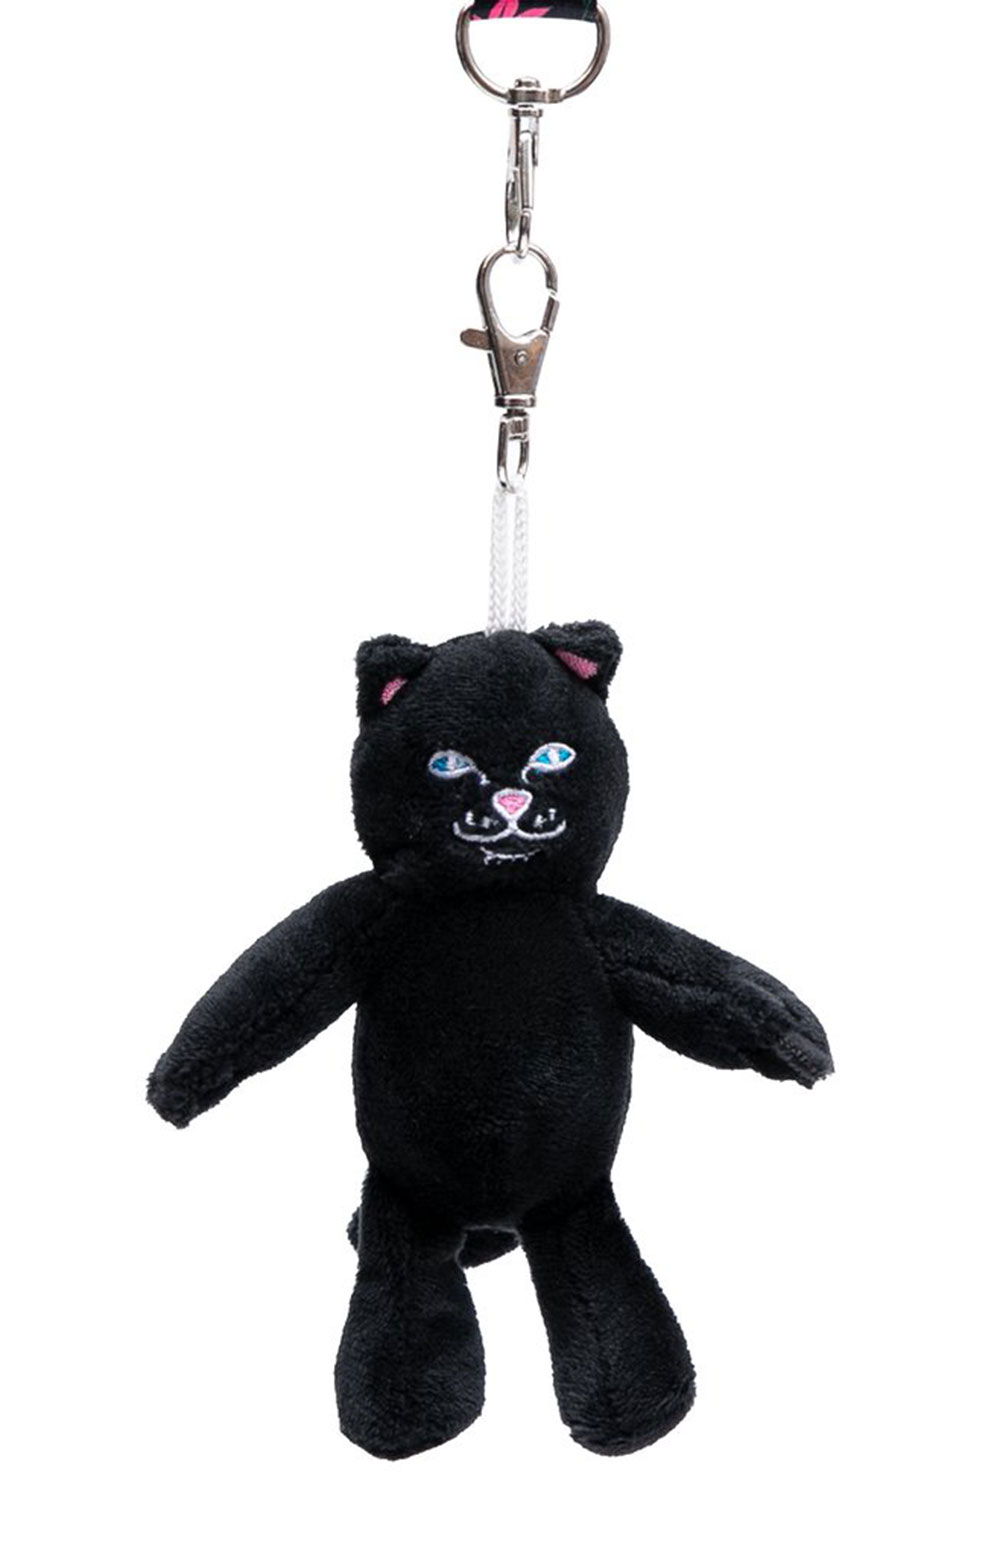 Lord Jermal Plush Keychain 1